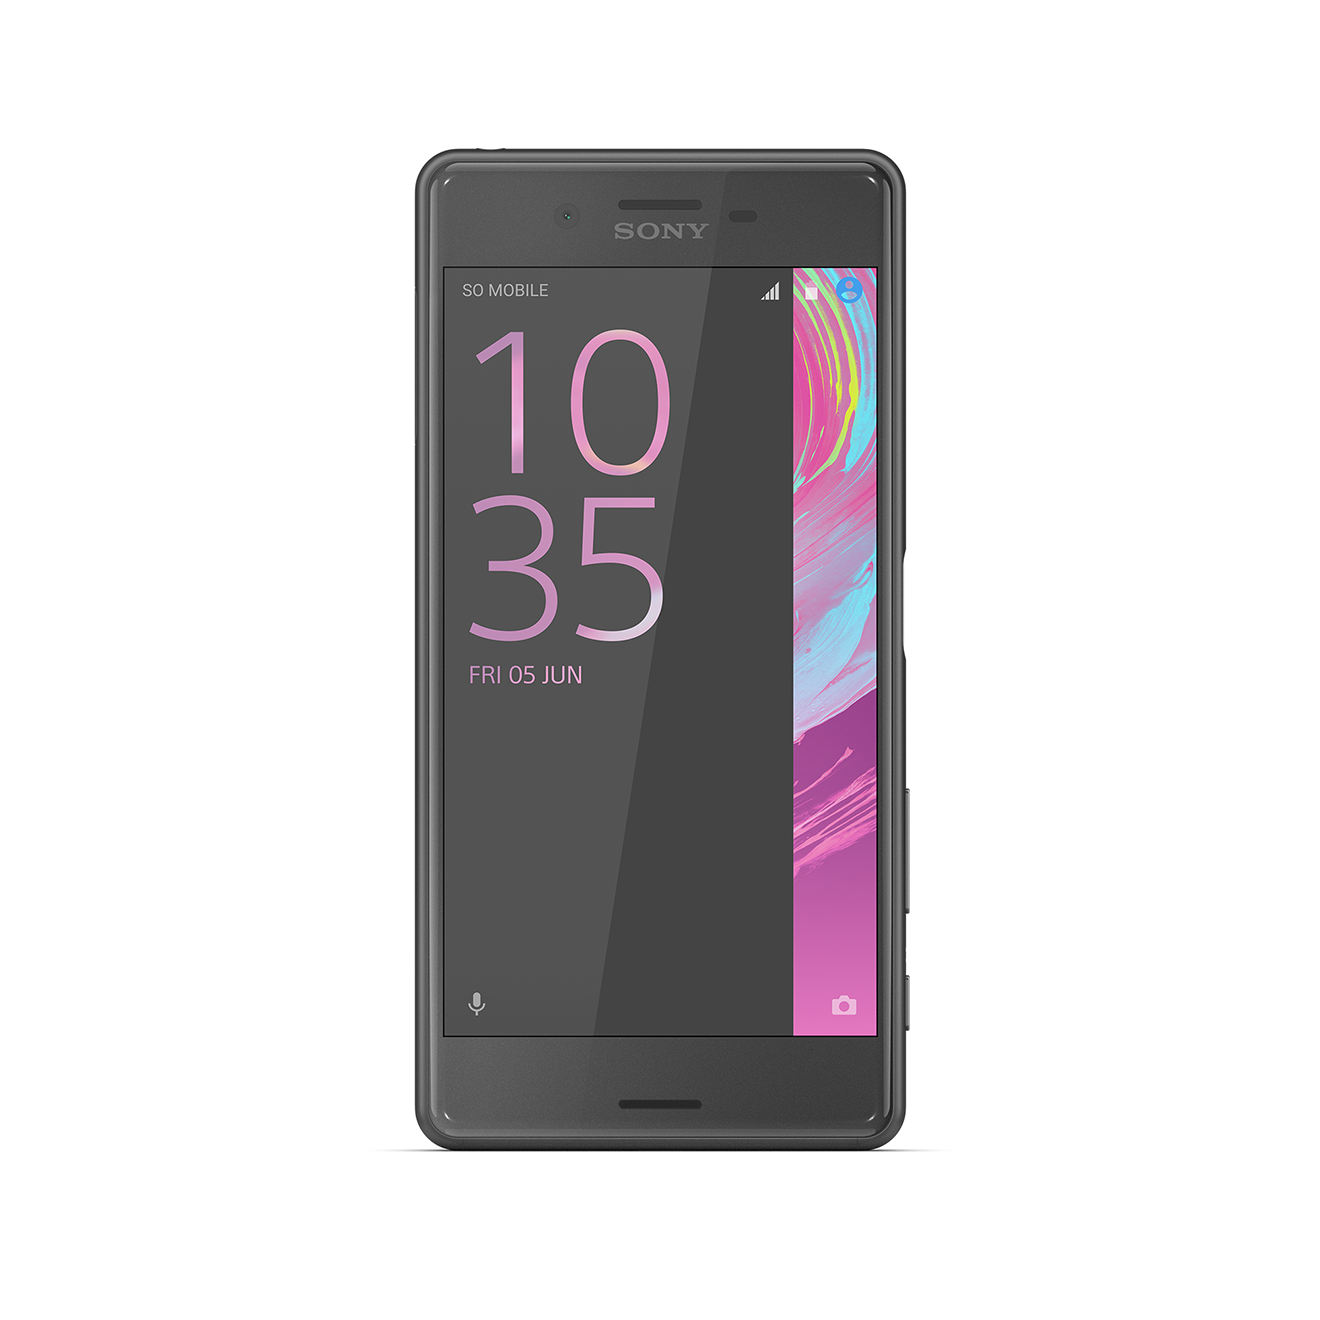 f028608572f ModelBrand:+SonyModel:+Xperia +X+Performance+(F8131)Part+Number:+1302-6213NetworkTechnology:+4G +LTEMobile+Frequencies:+GSM+850+/+900+/+1800+/+1900+MHz+UMTS+ ...